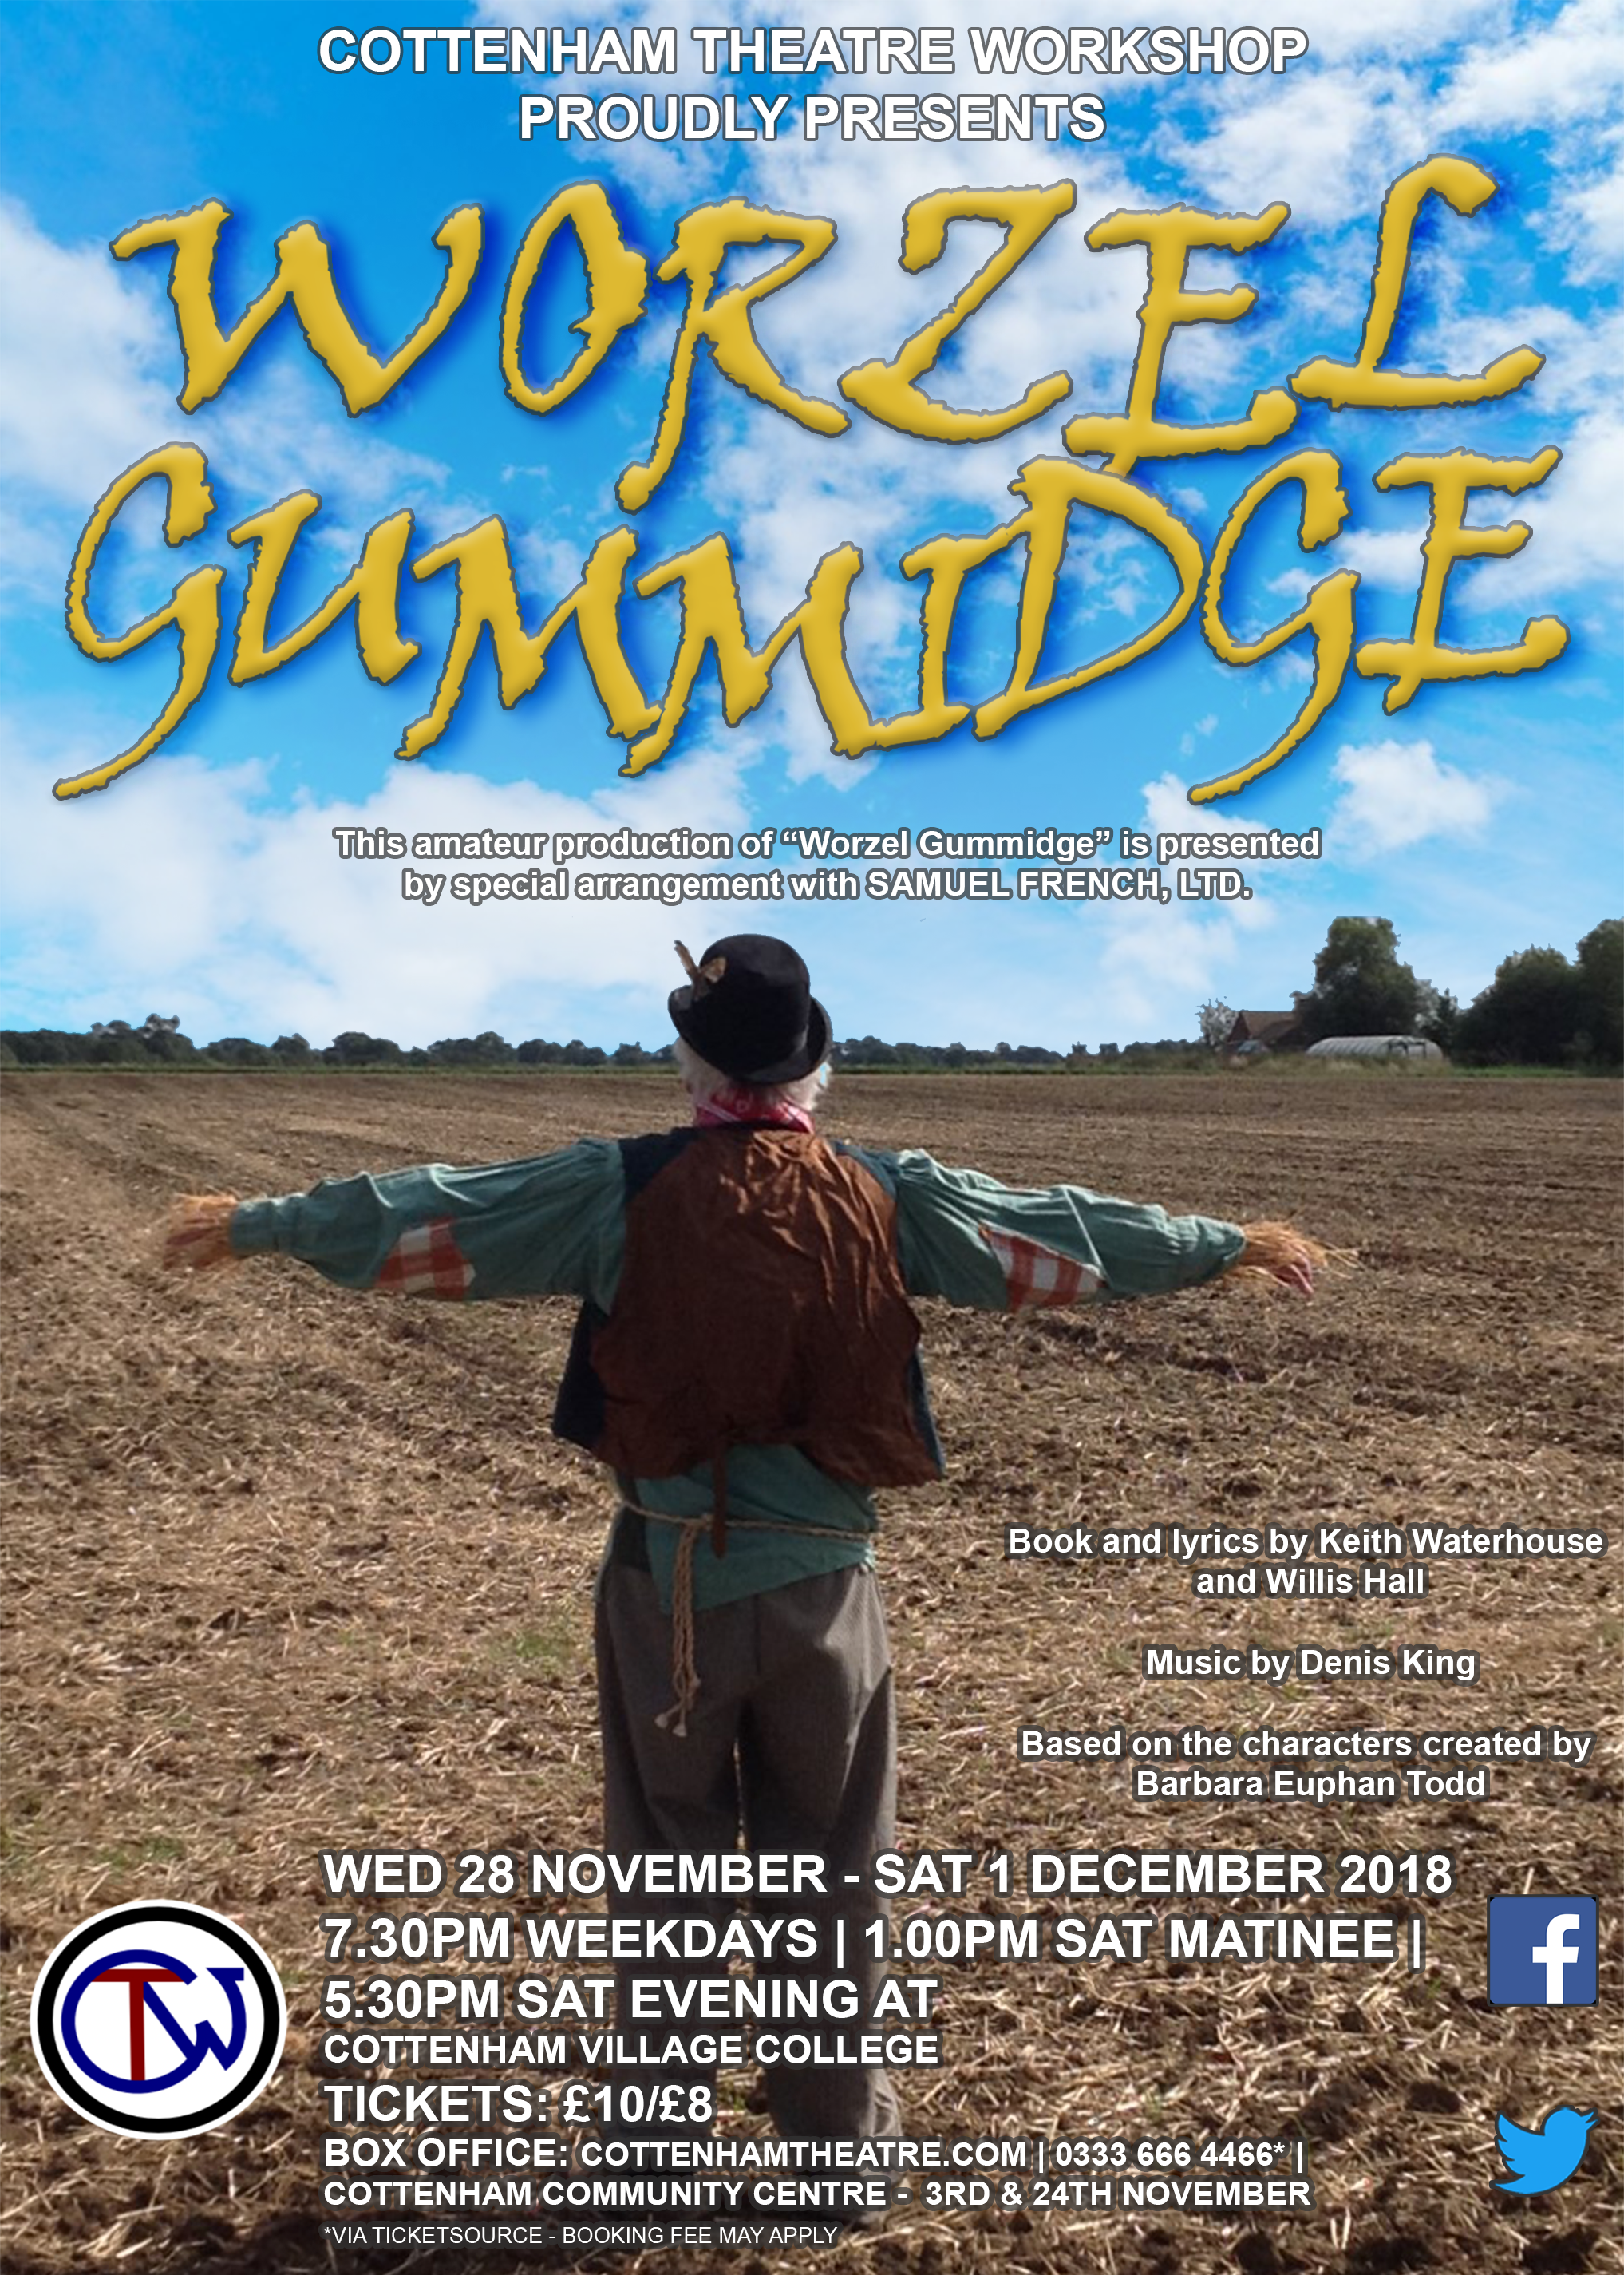 Worzel Gummidge Cottenham Theatre Workshop